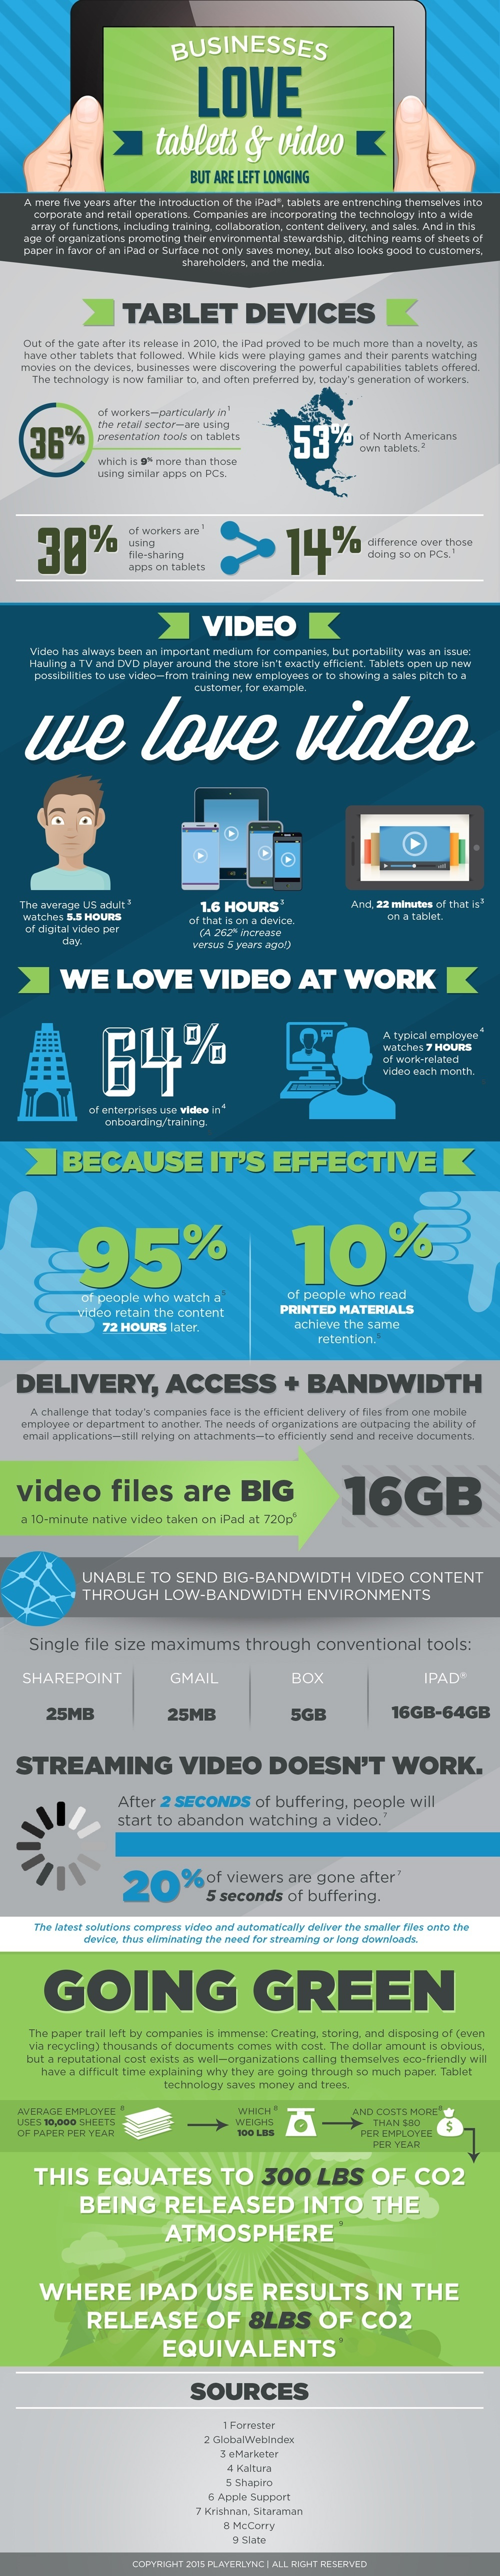 Businesses Love Tablets and Video for eLearning Infographic